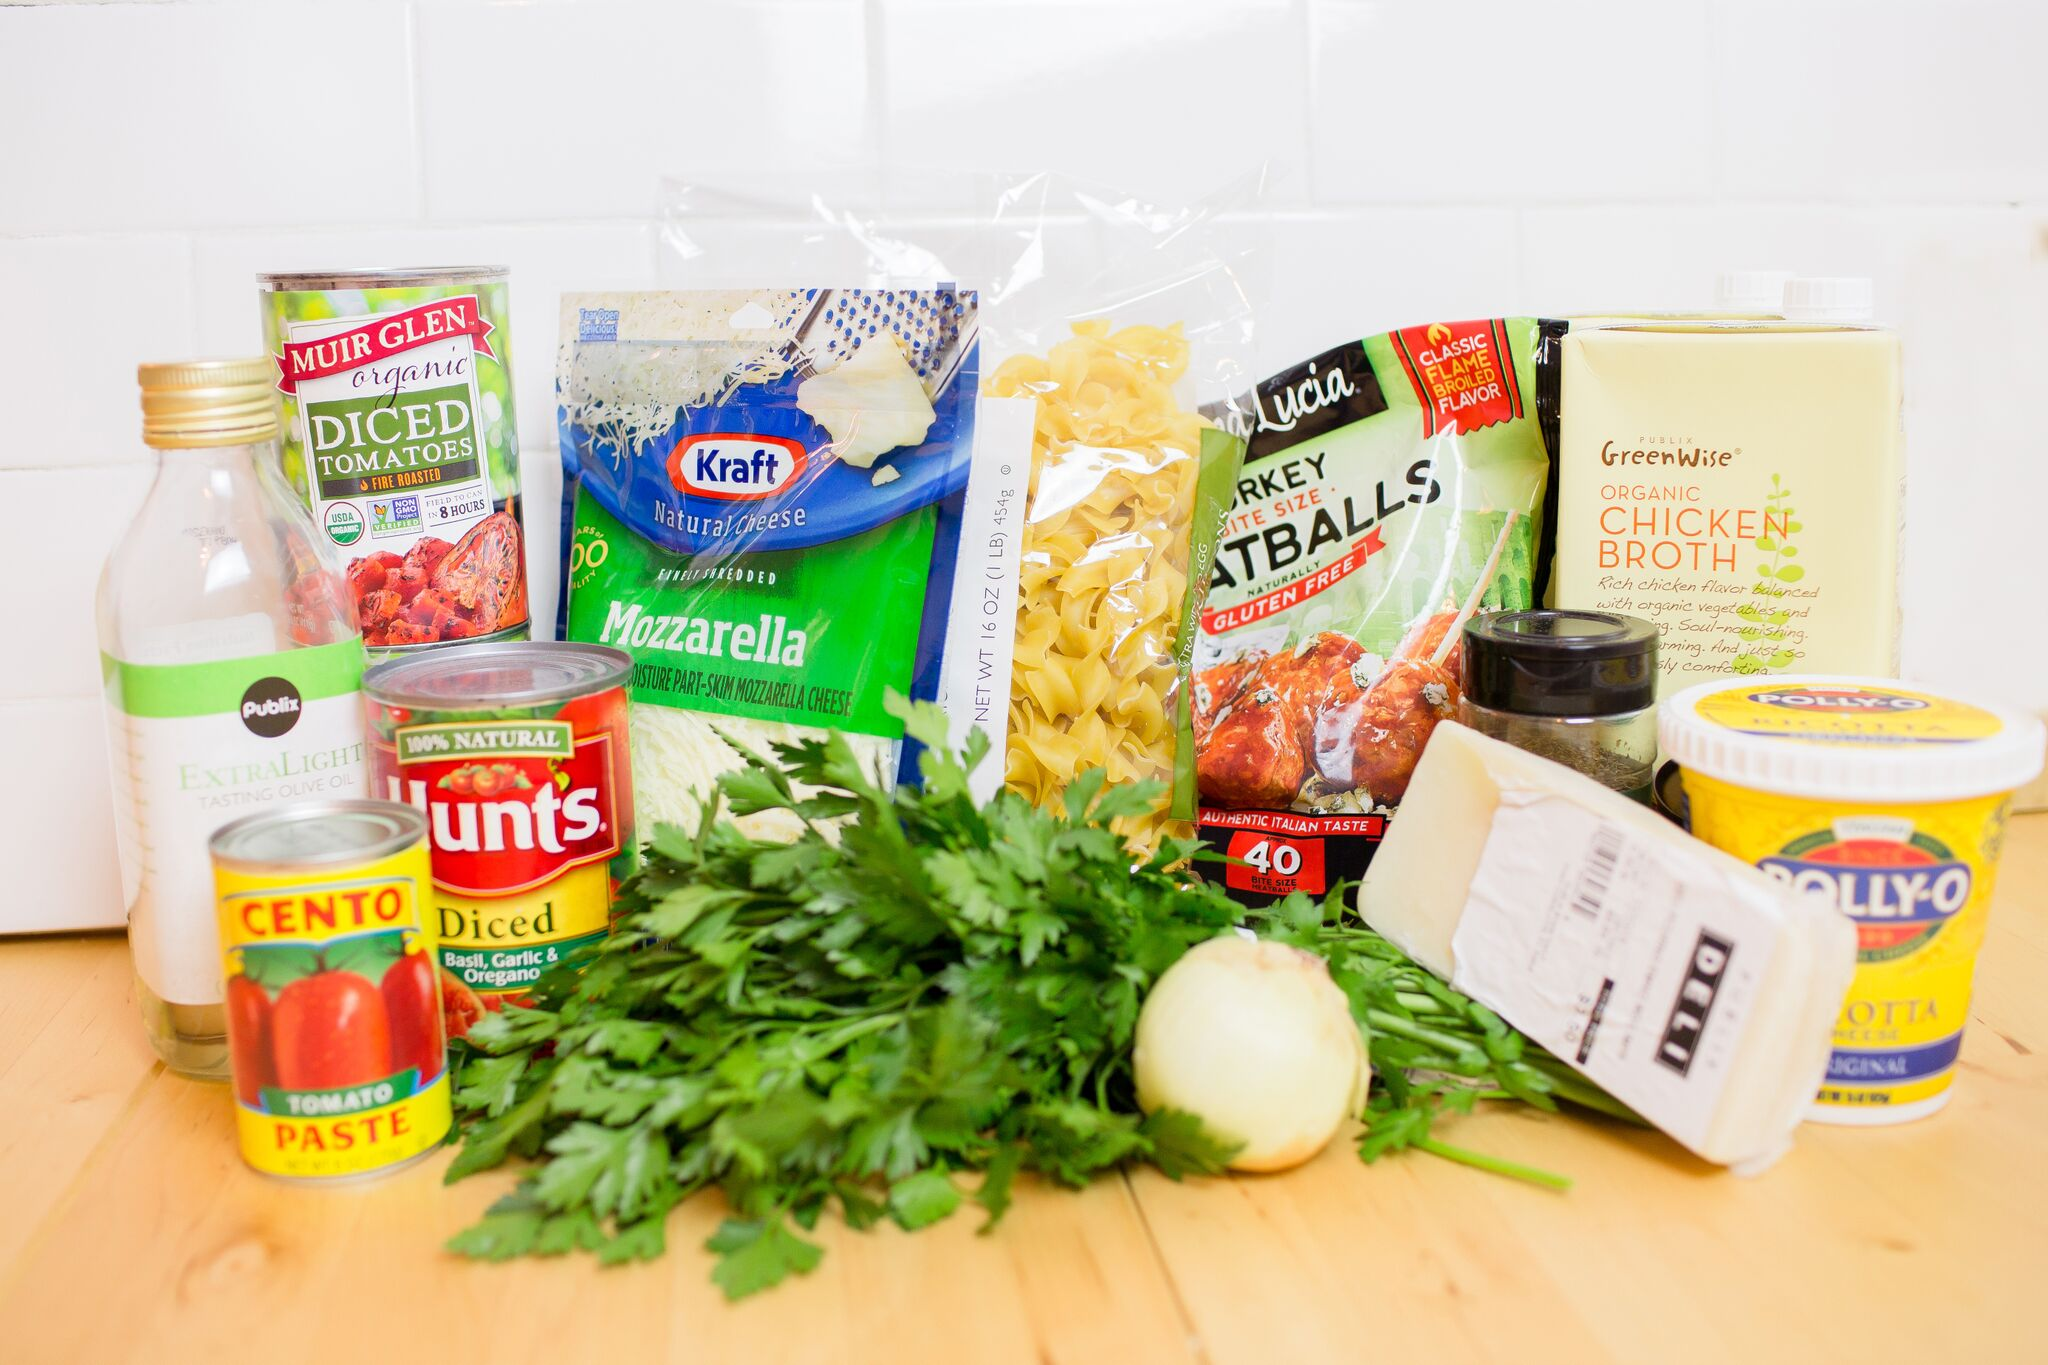 Ingredients for Easy Lasagna Soup-Looking for a hearty meal that the whole family will love? This Lasagna Soup recipe tastes great, uses simple, easy-to-find ingredients, and can be made in an hour or less! Did we mention it's a perfect recipe for the Instant Pot too?